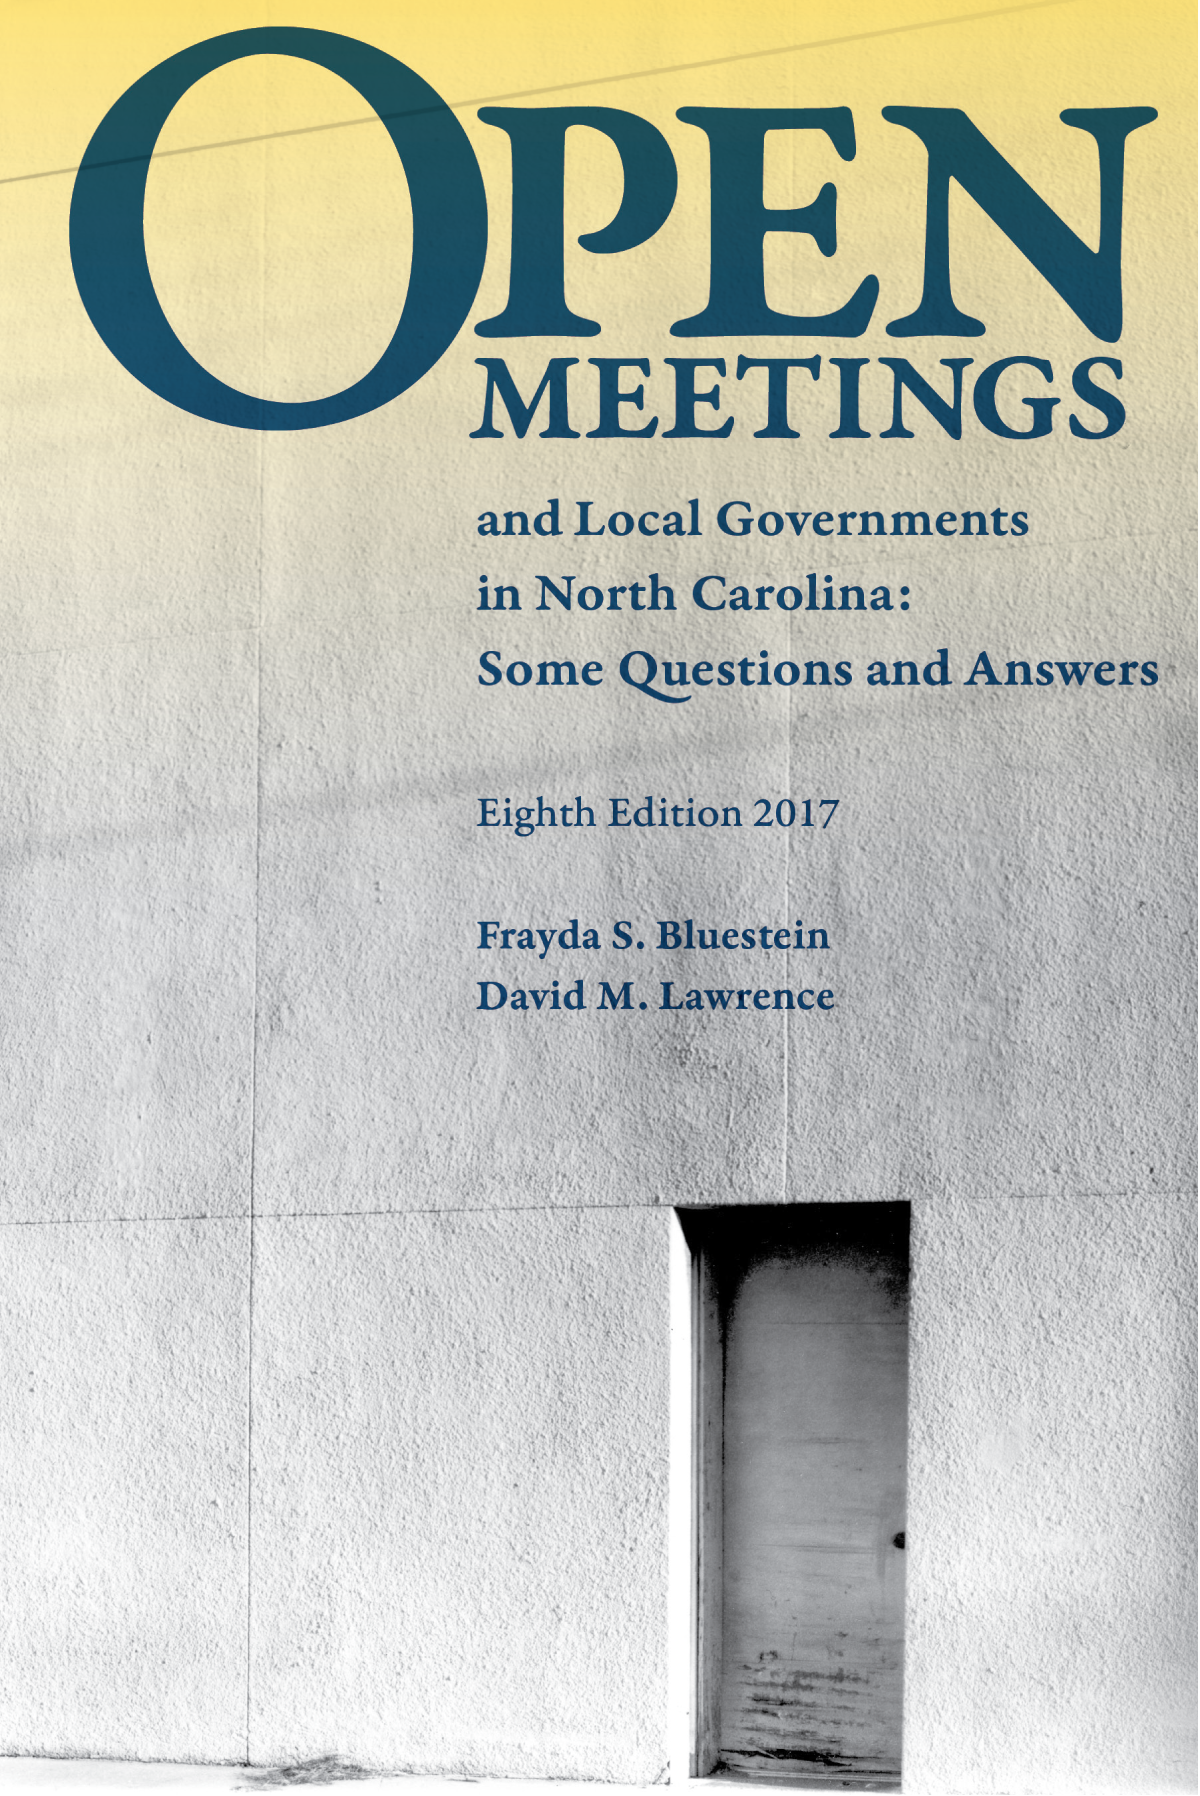 Cover image for Open Meetings and Local Governments in North Carolina: Some Questions and Answers, Eighth Edition, 2017